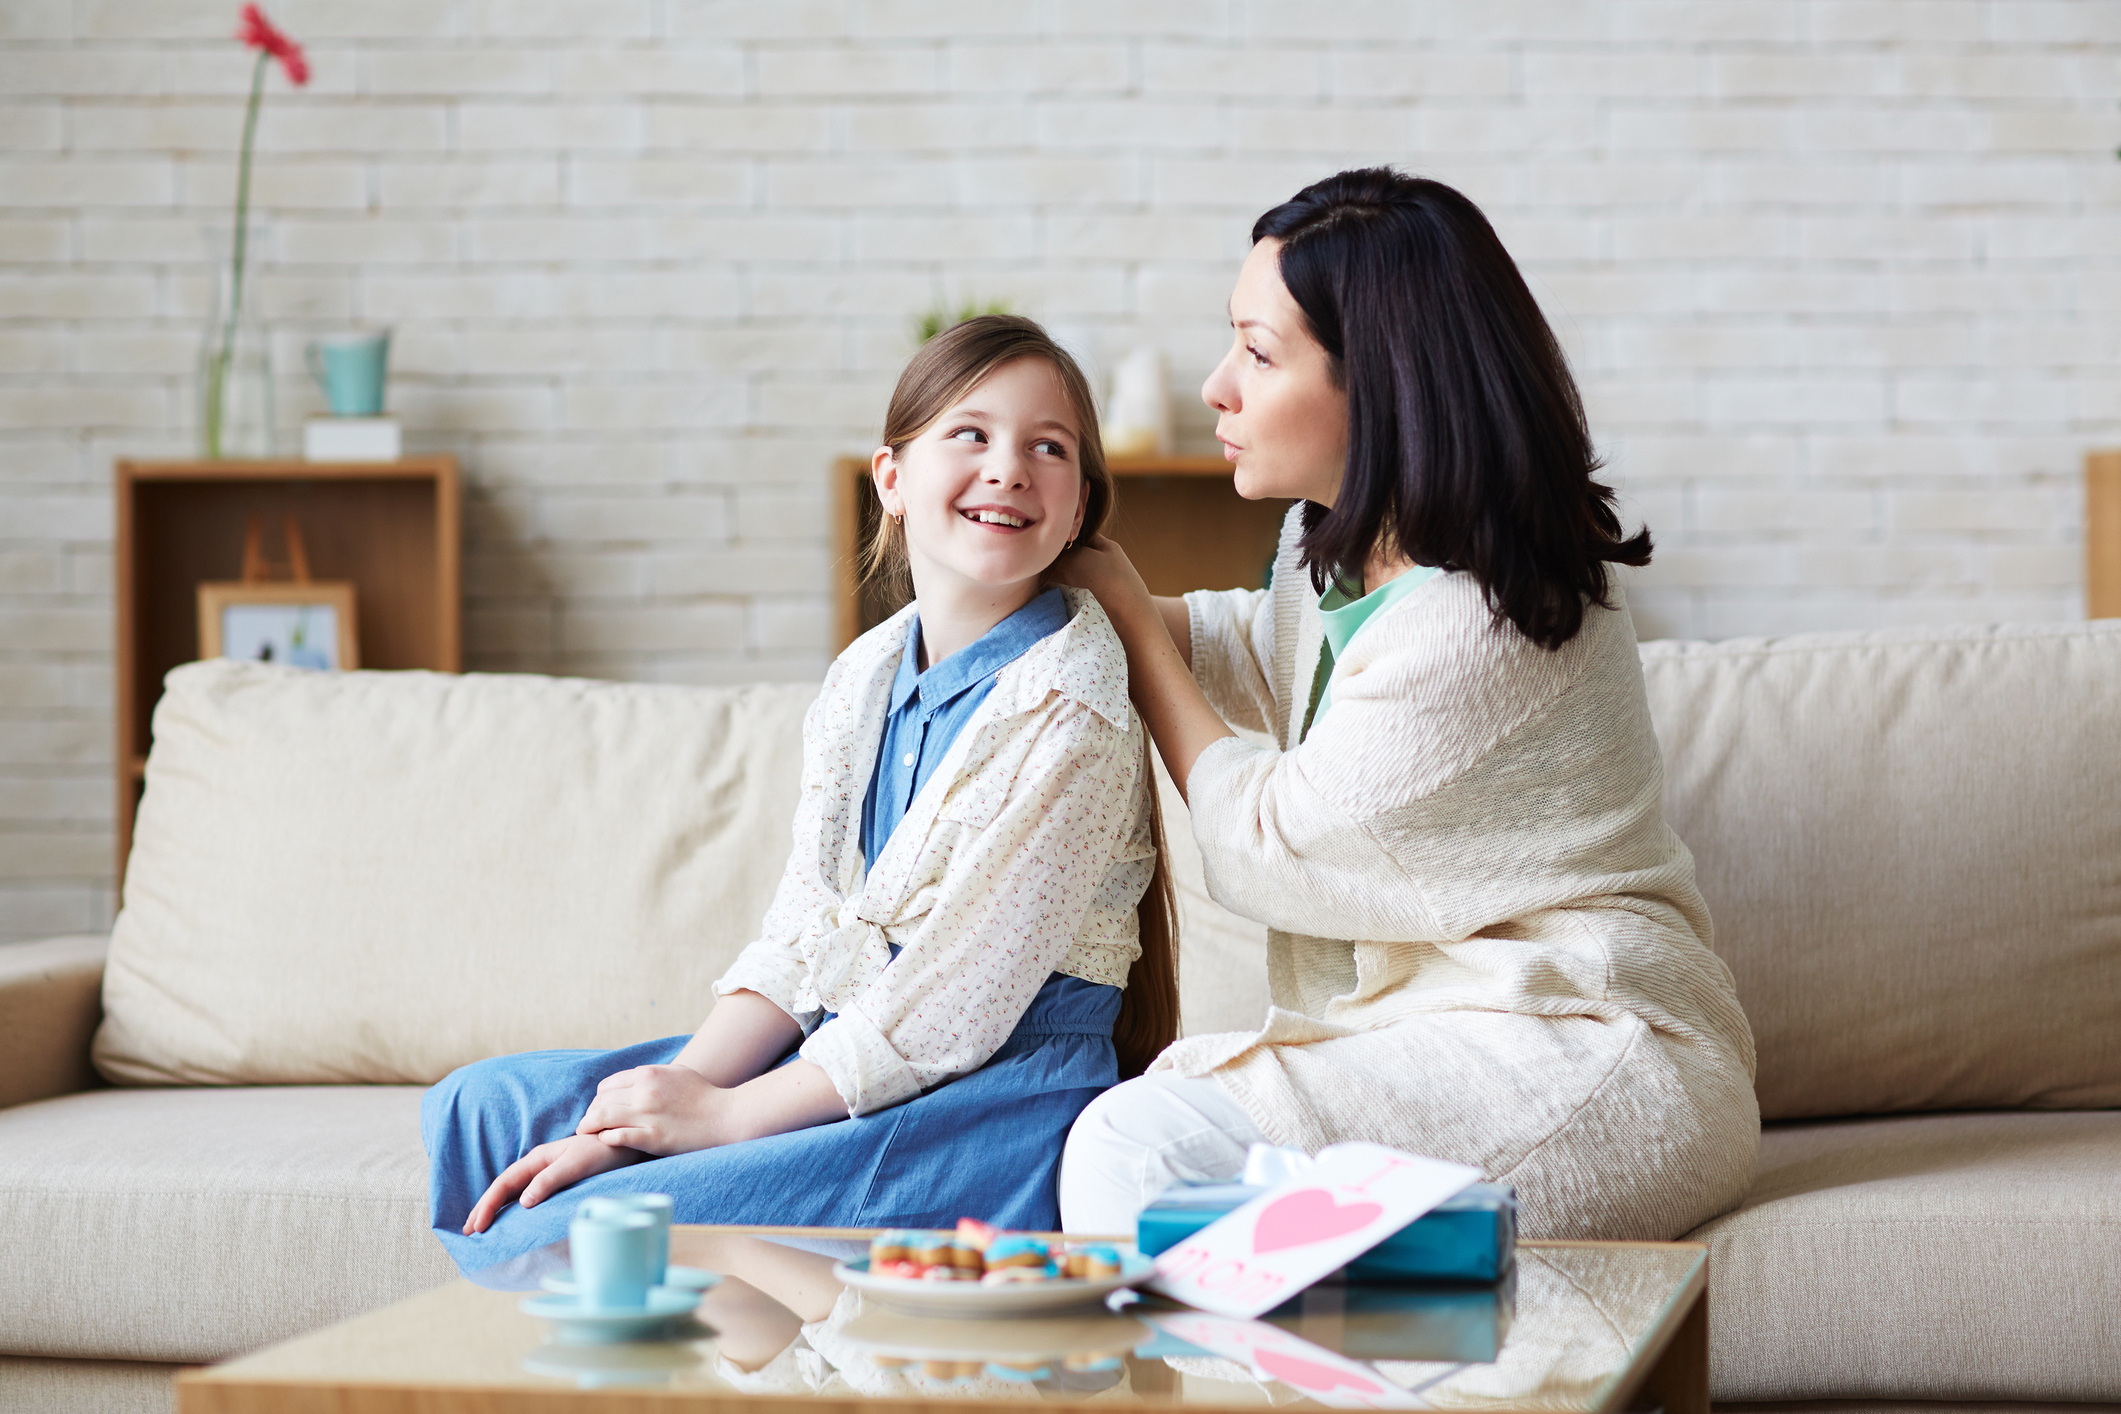 4 Tips to Talk to Your Child About Sex